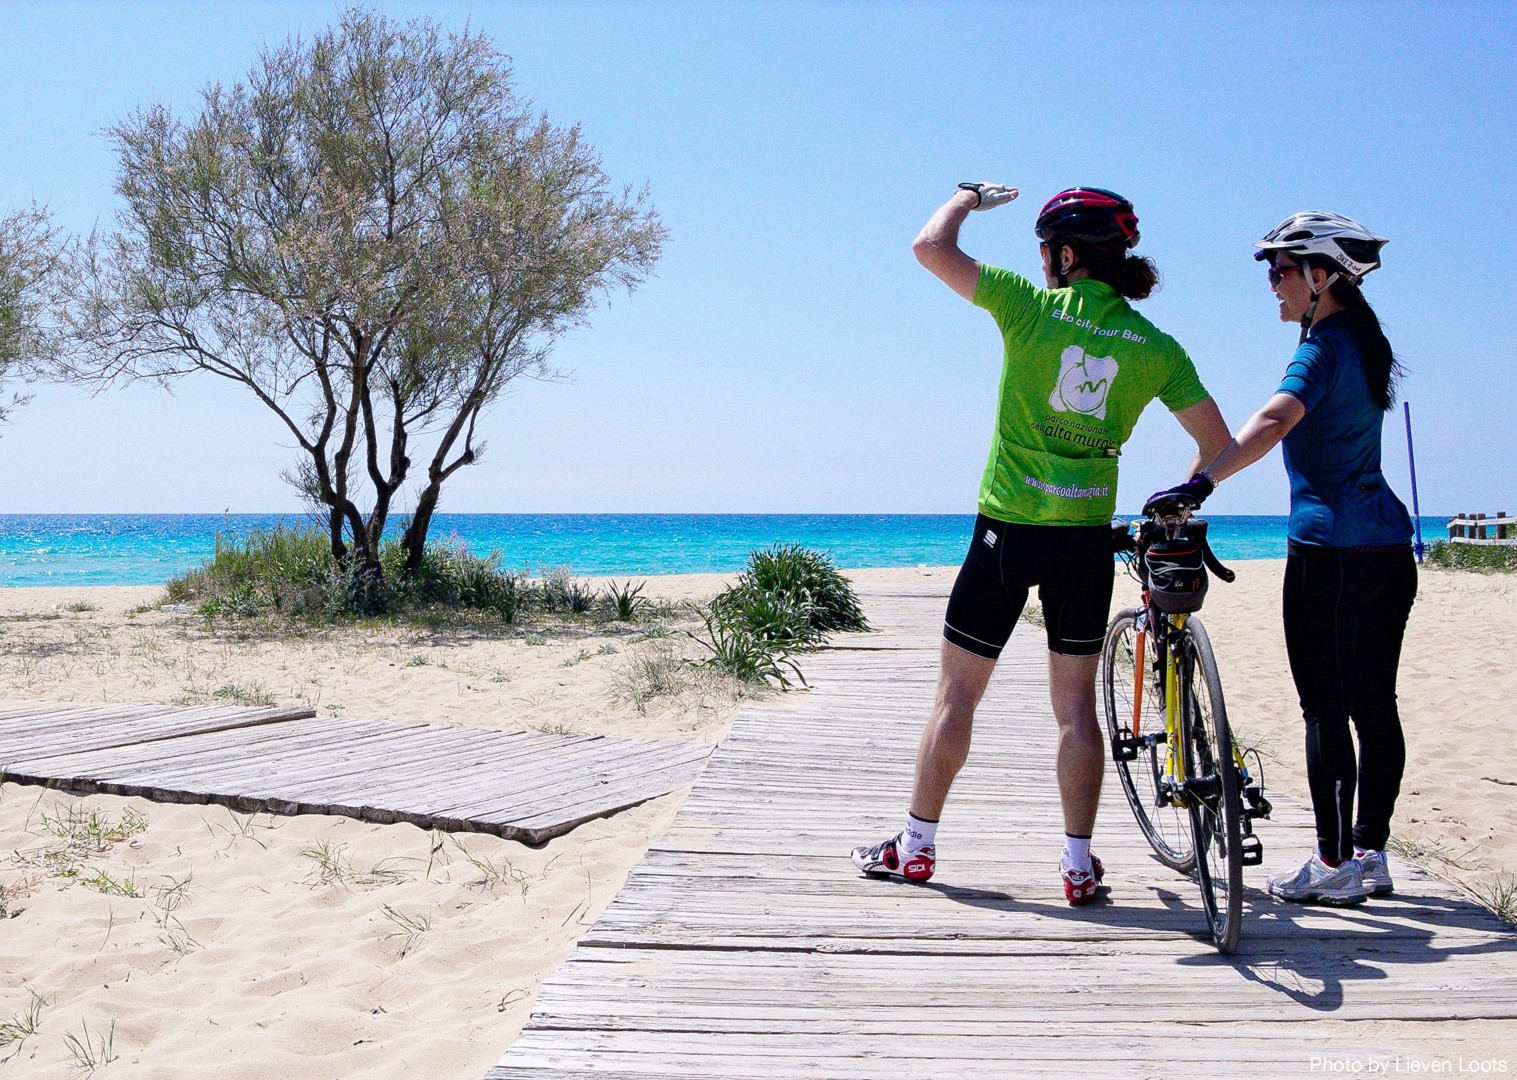 views-italy-coast-puglia-holiday.jpg - Italy - Puglia - The Beautiful South - Self-Guided Road Cycling Holiday - Road Cycling